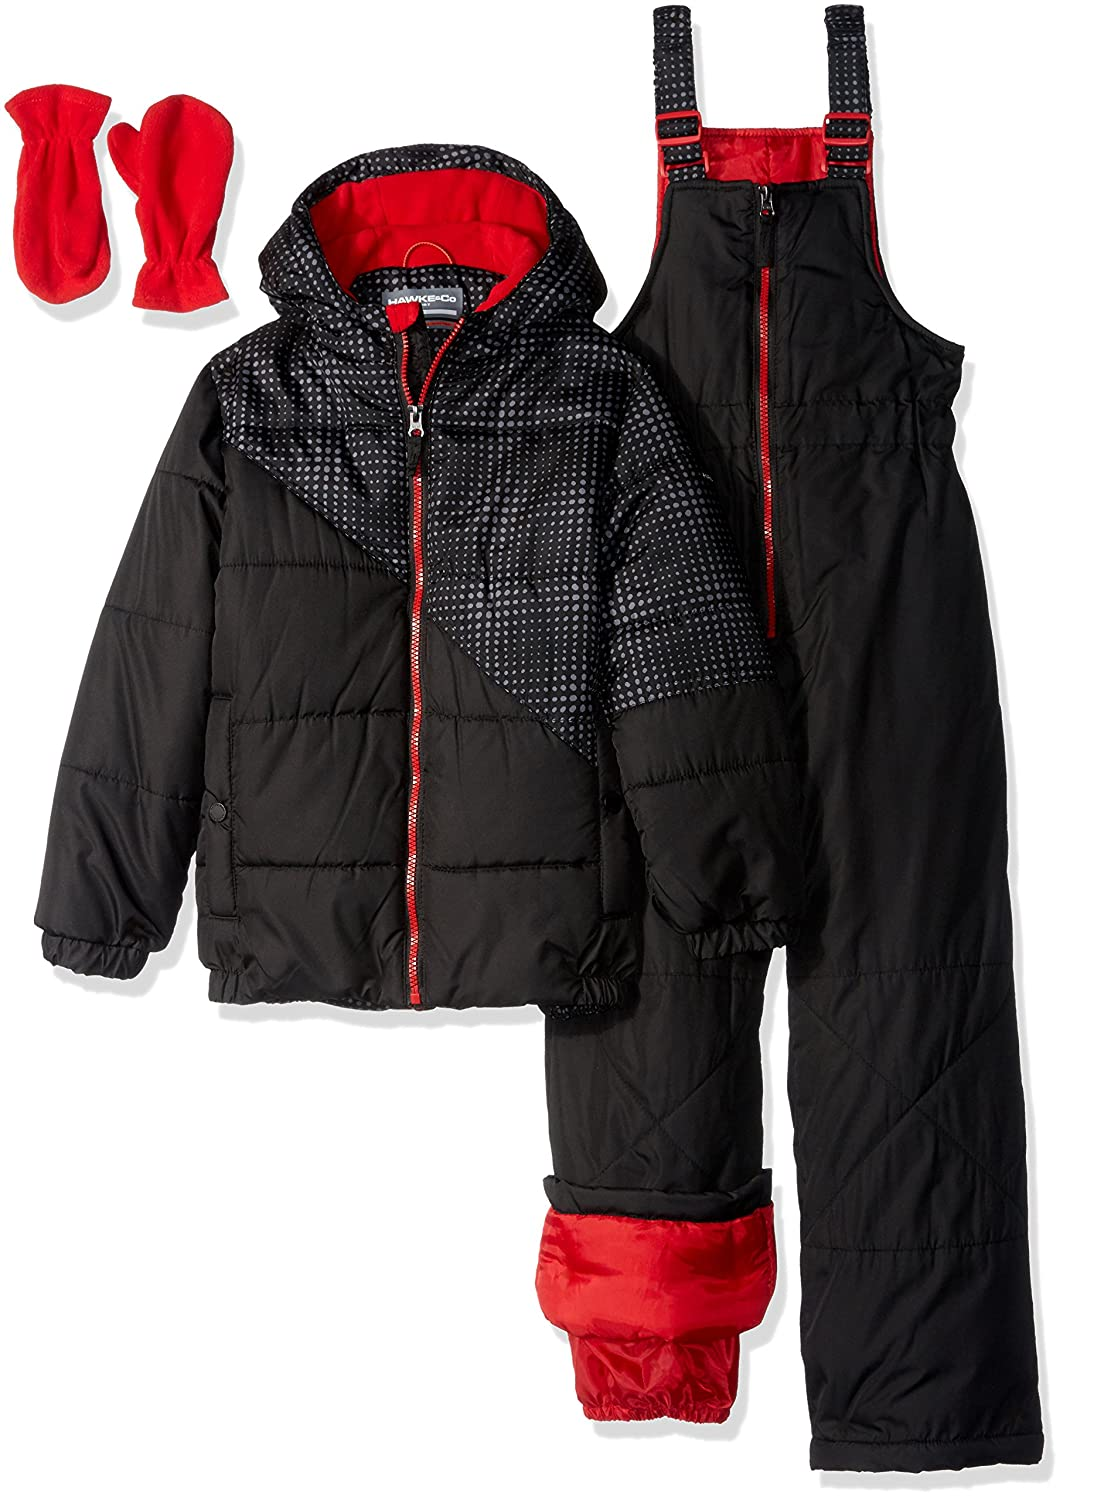 Hawke & Co. Boys' 2 Piece Snow Suit with Optic Dot Print and Bib Pant 61037H